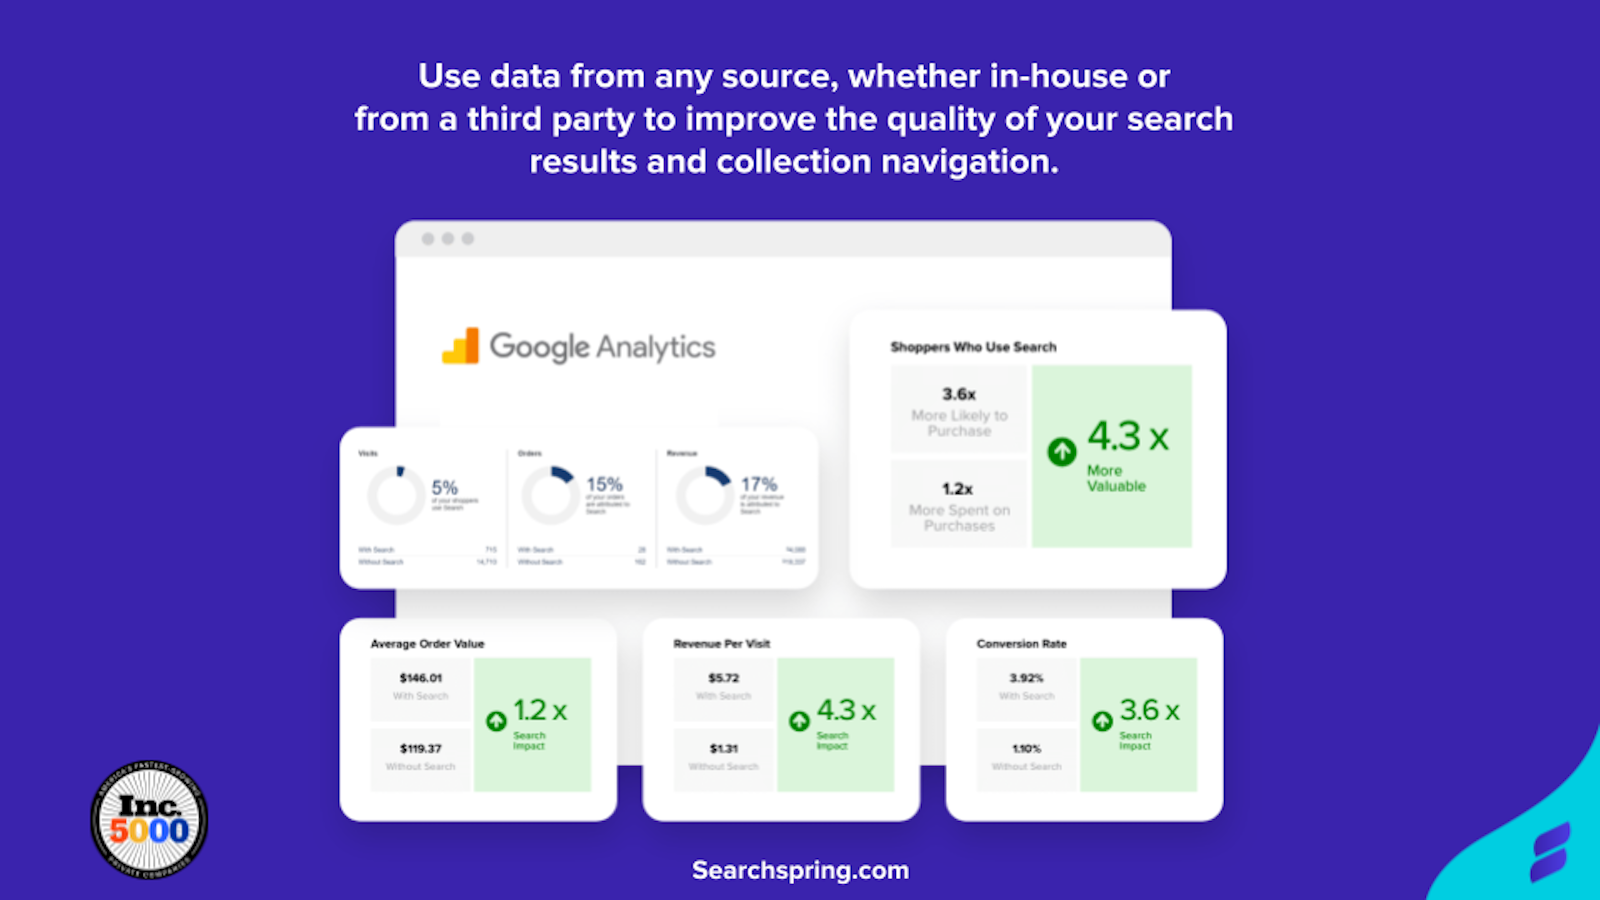 Use data from any source, whether in-house or from a third party